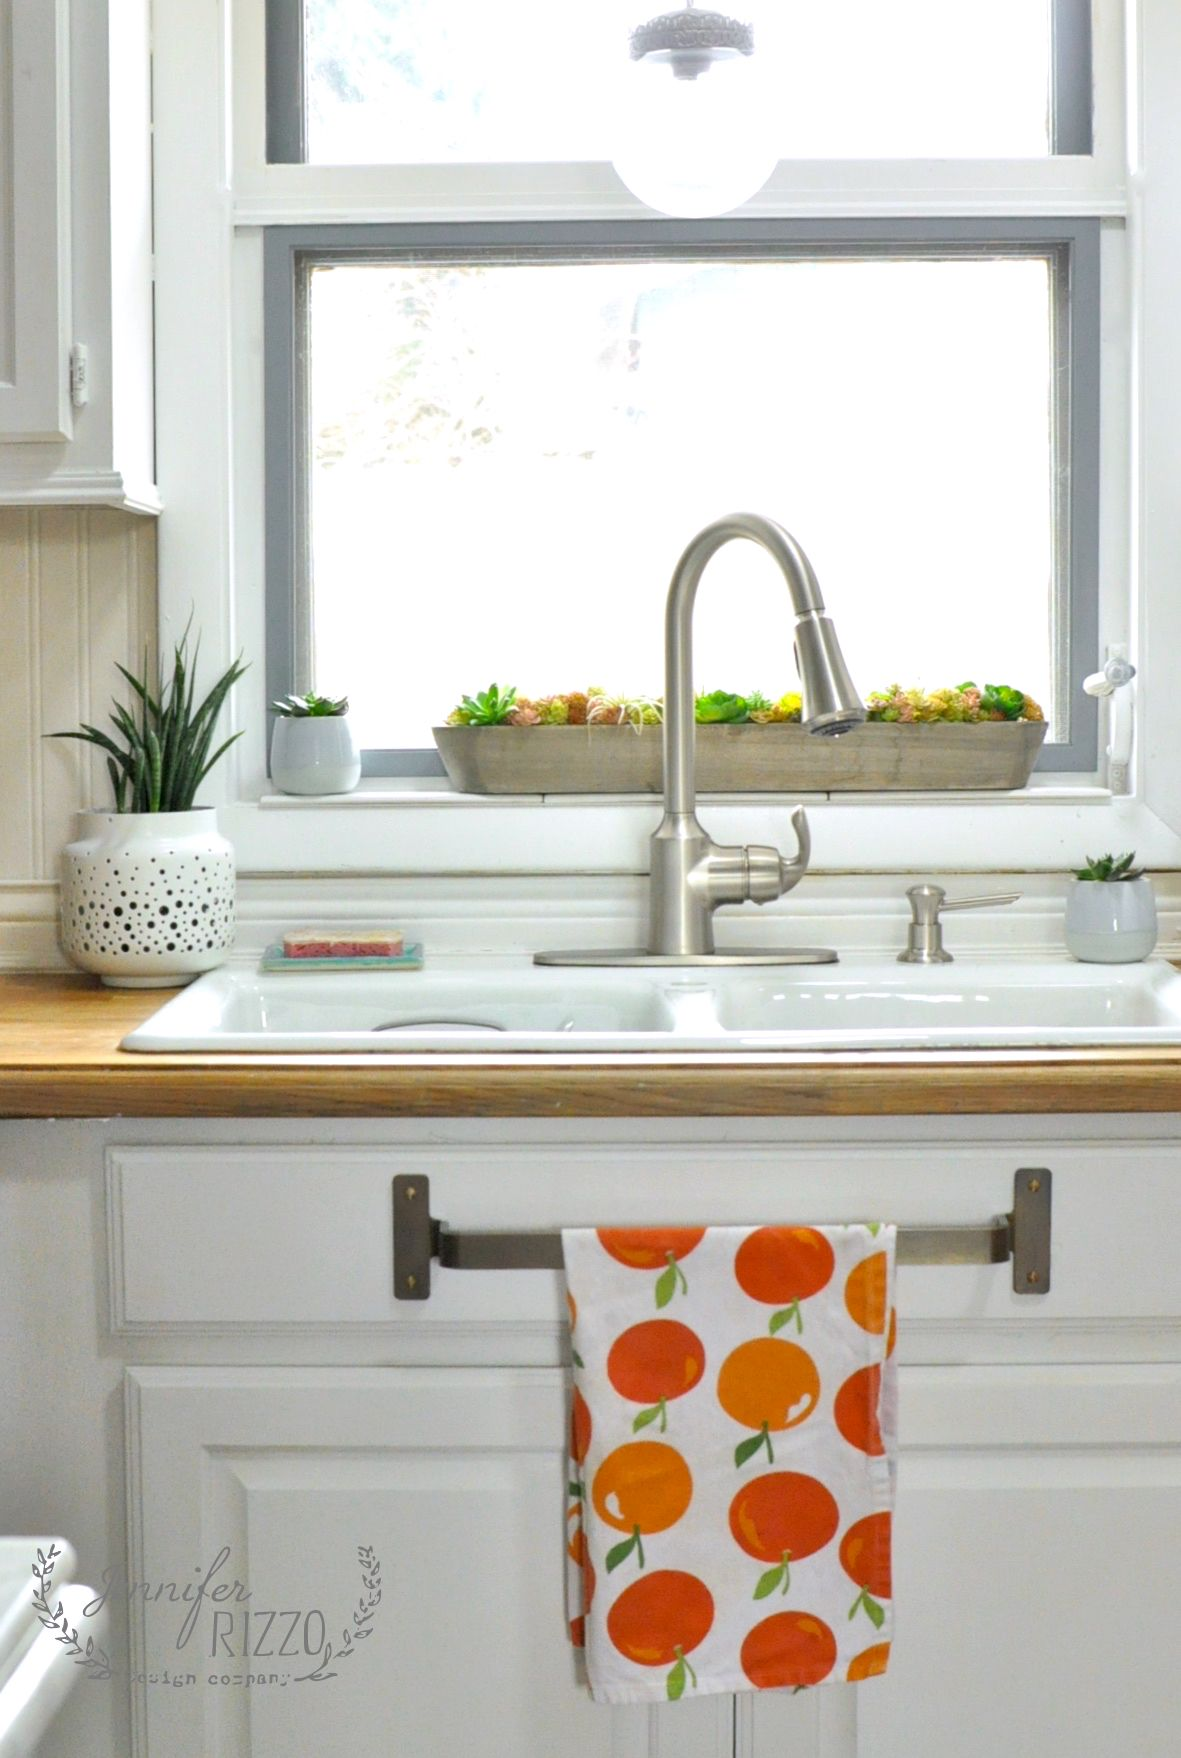 Kitchen Towel Rack Under Sink Sink area mini makeover with brass towel bar under the sink sinks kitchen sink with gray painted window and brass towel bar under sink what a great workwithnaturefo